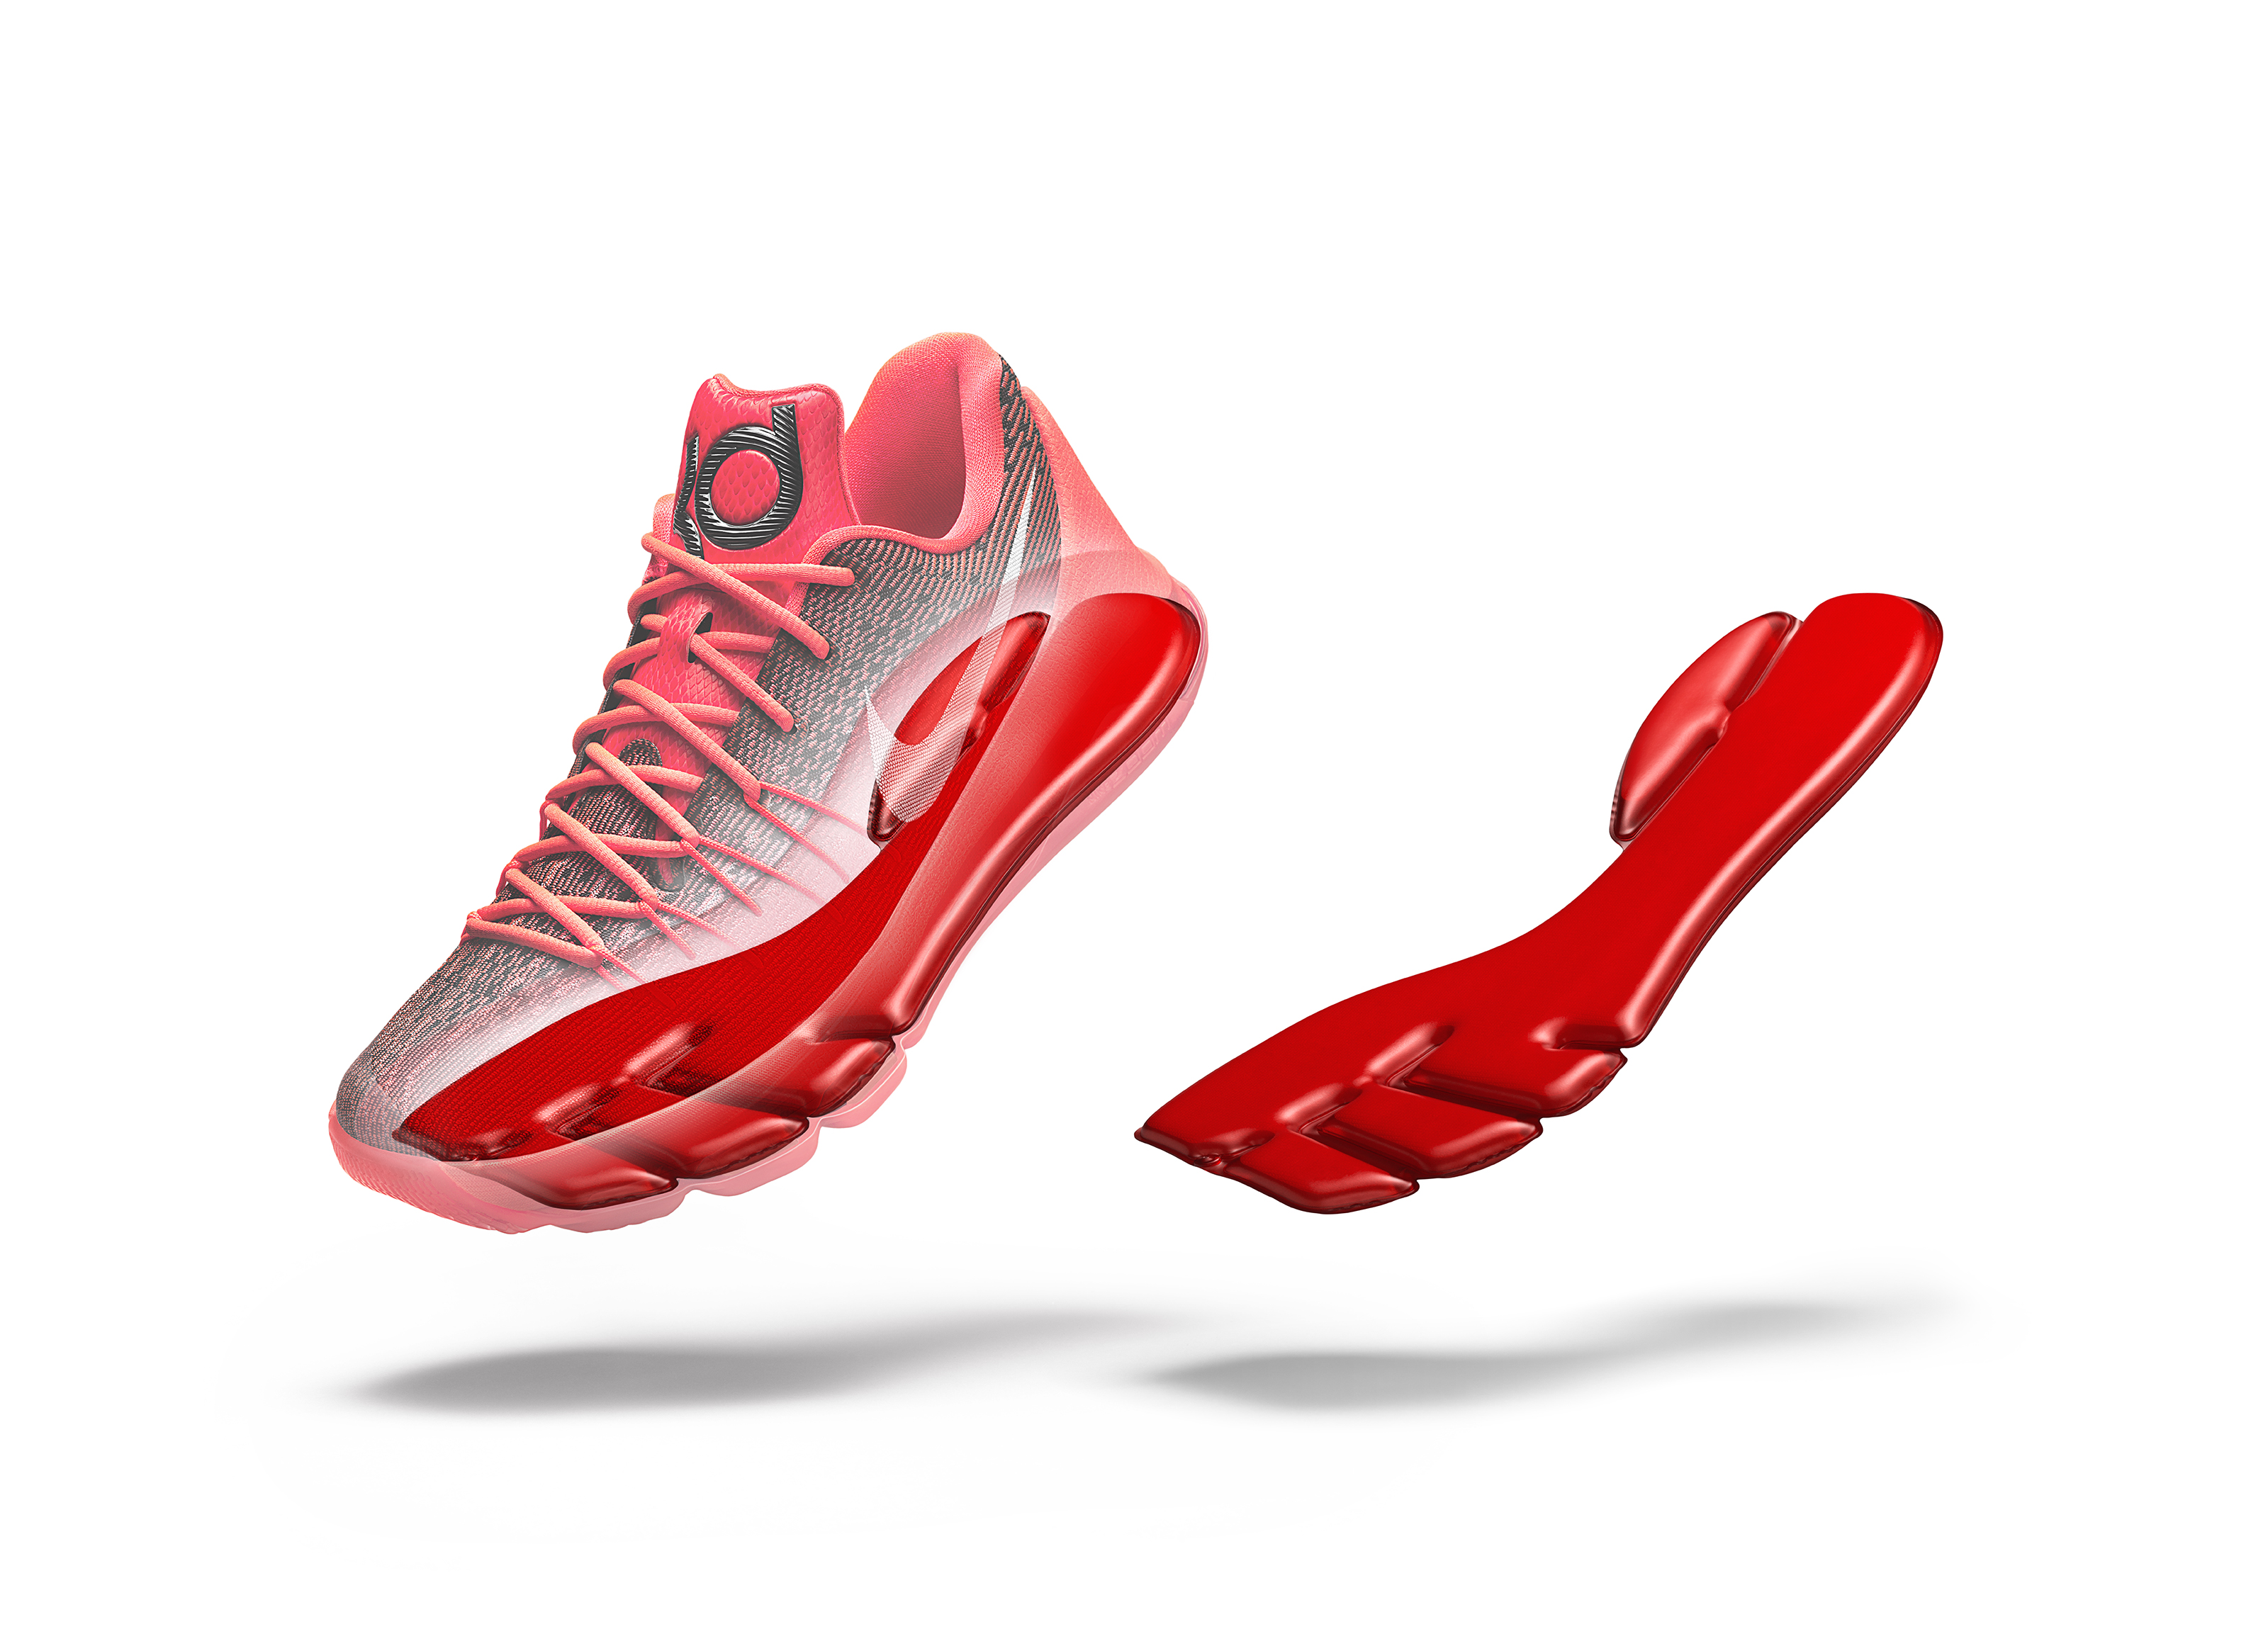 f2f282f9bf7a KD 7 Deconstructed - WearTesters Nike Zoom Air The Technology of Fast ...